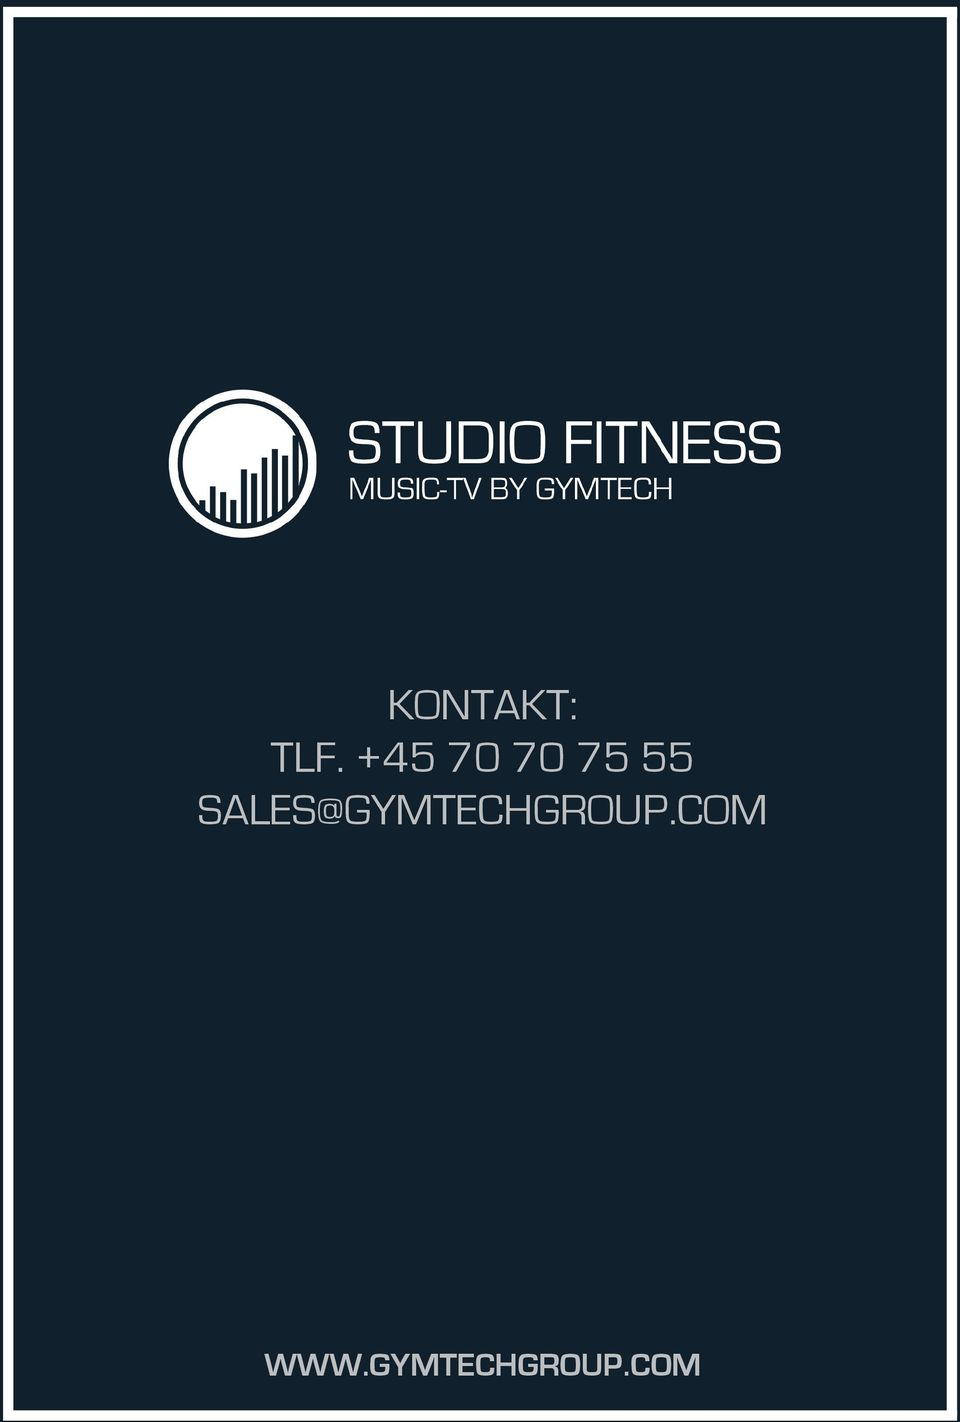 SALES@GYMTECHGROUP.